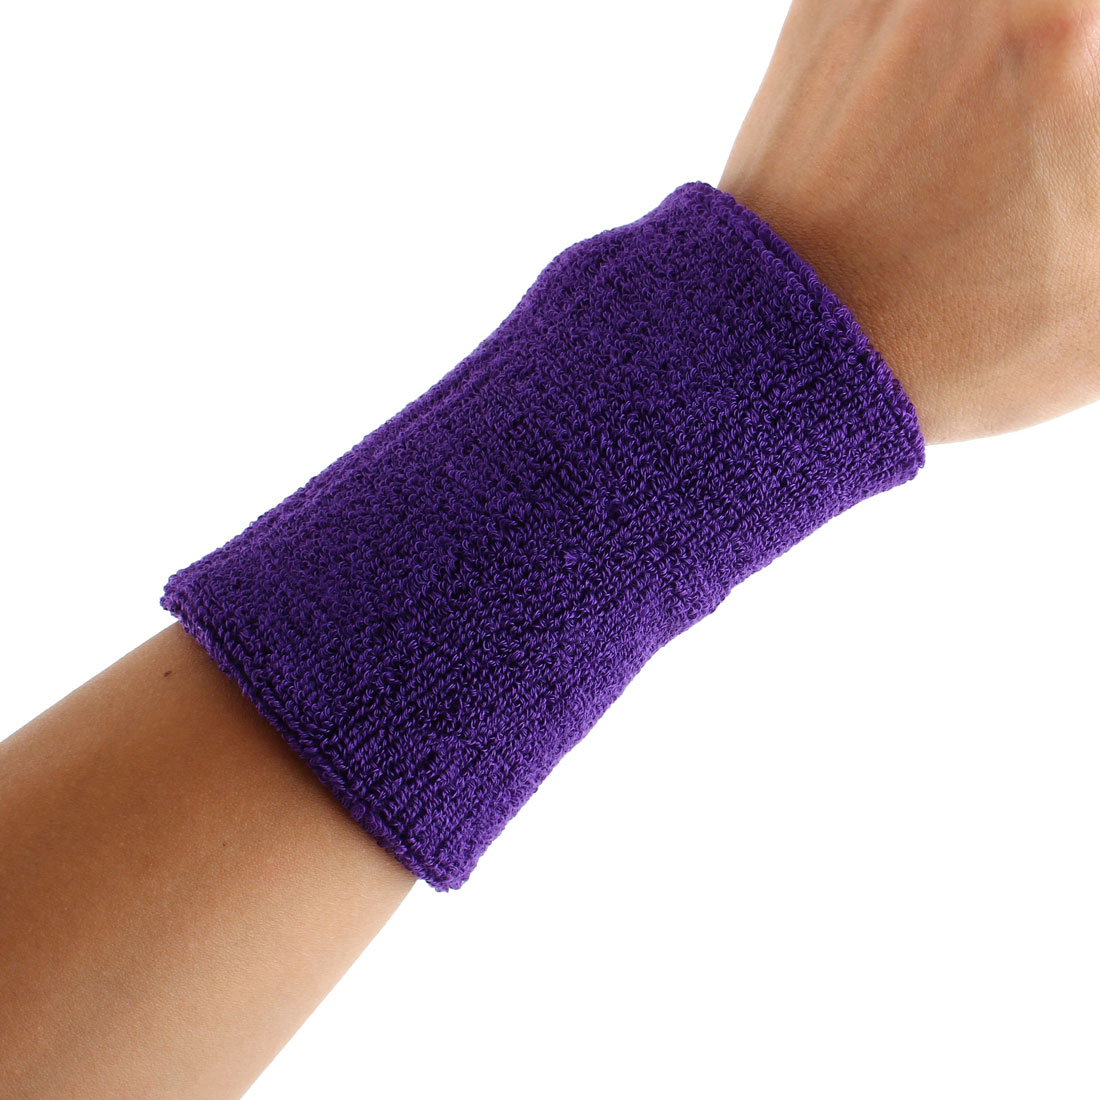 Exercises Football Gym Elastic Strap Hand Protector Sweatband Sport Wrist Purple 2pcs